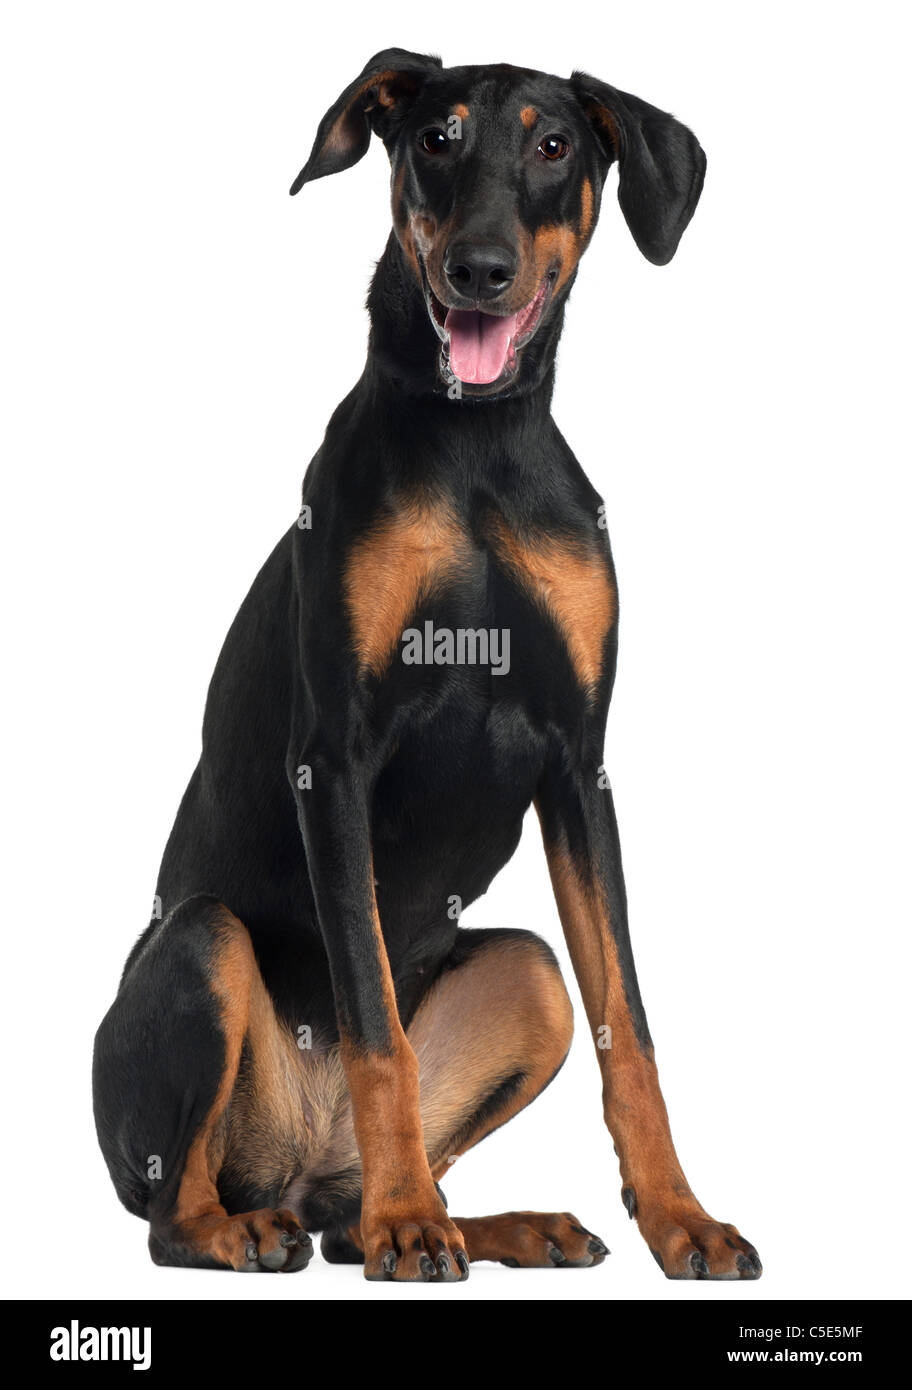 Doberman Pinscher, 8 and a half months old, sitting in front of white background - Stock Image